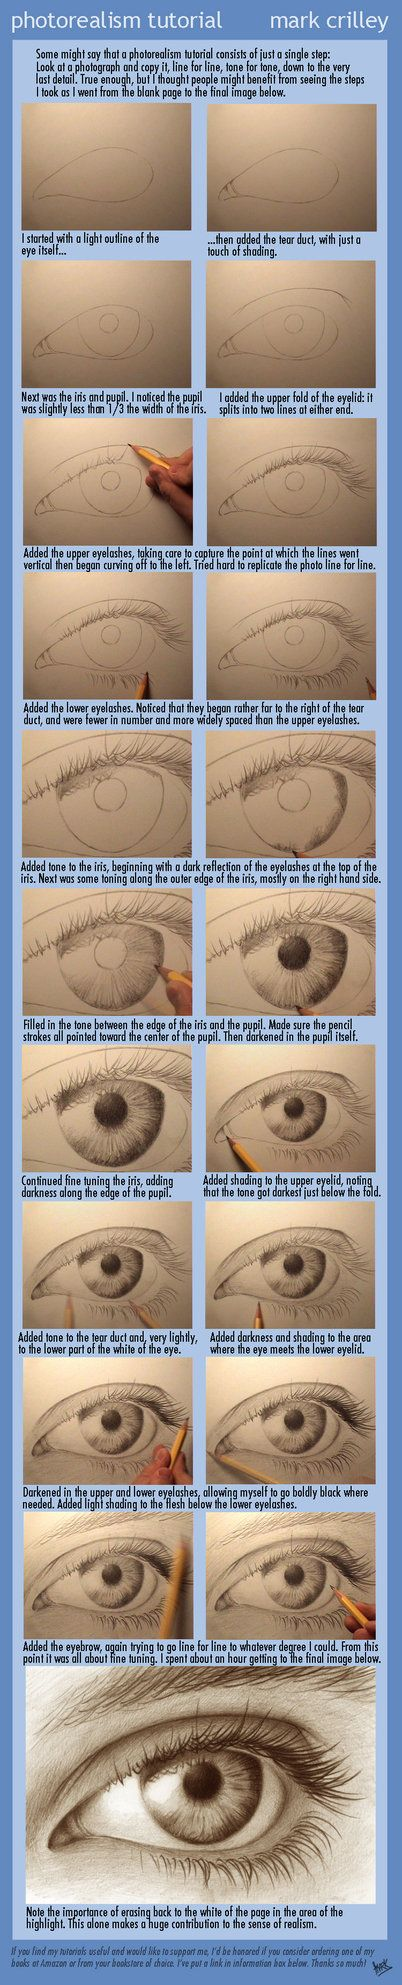 Pinned from original source for photorealism tutorial for how to draw an eye--so very cool!